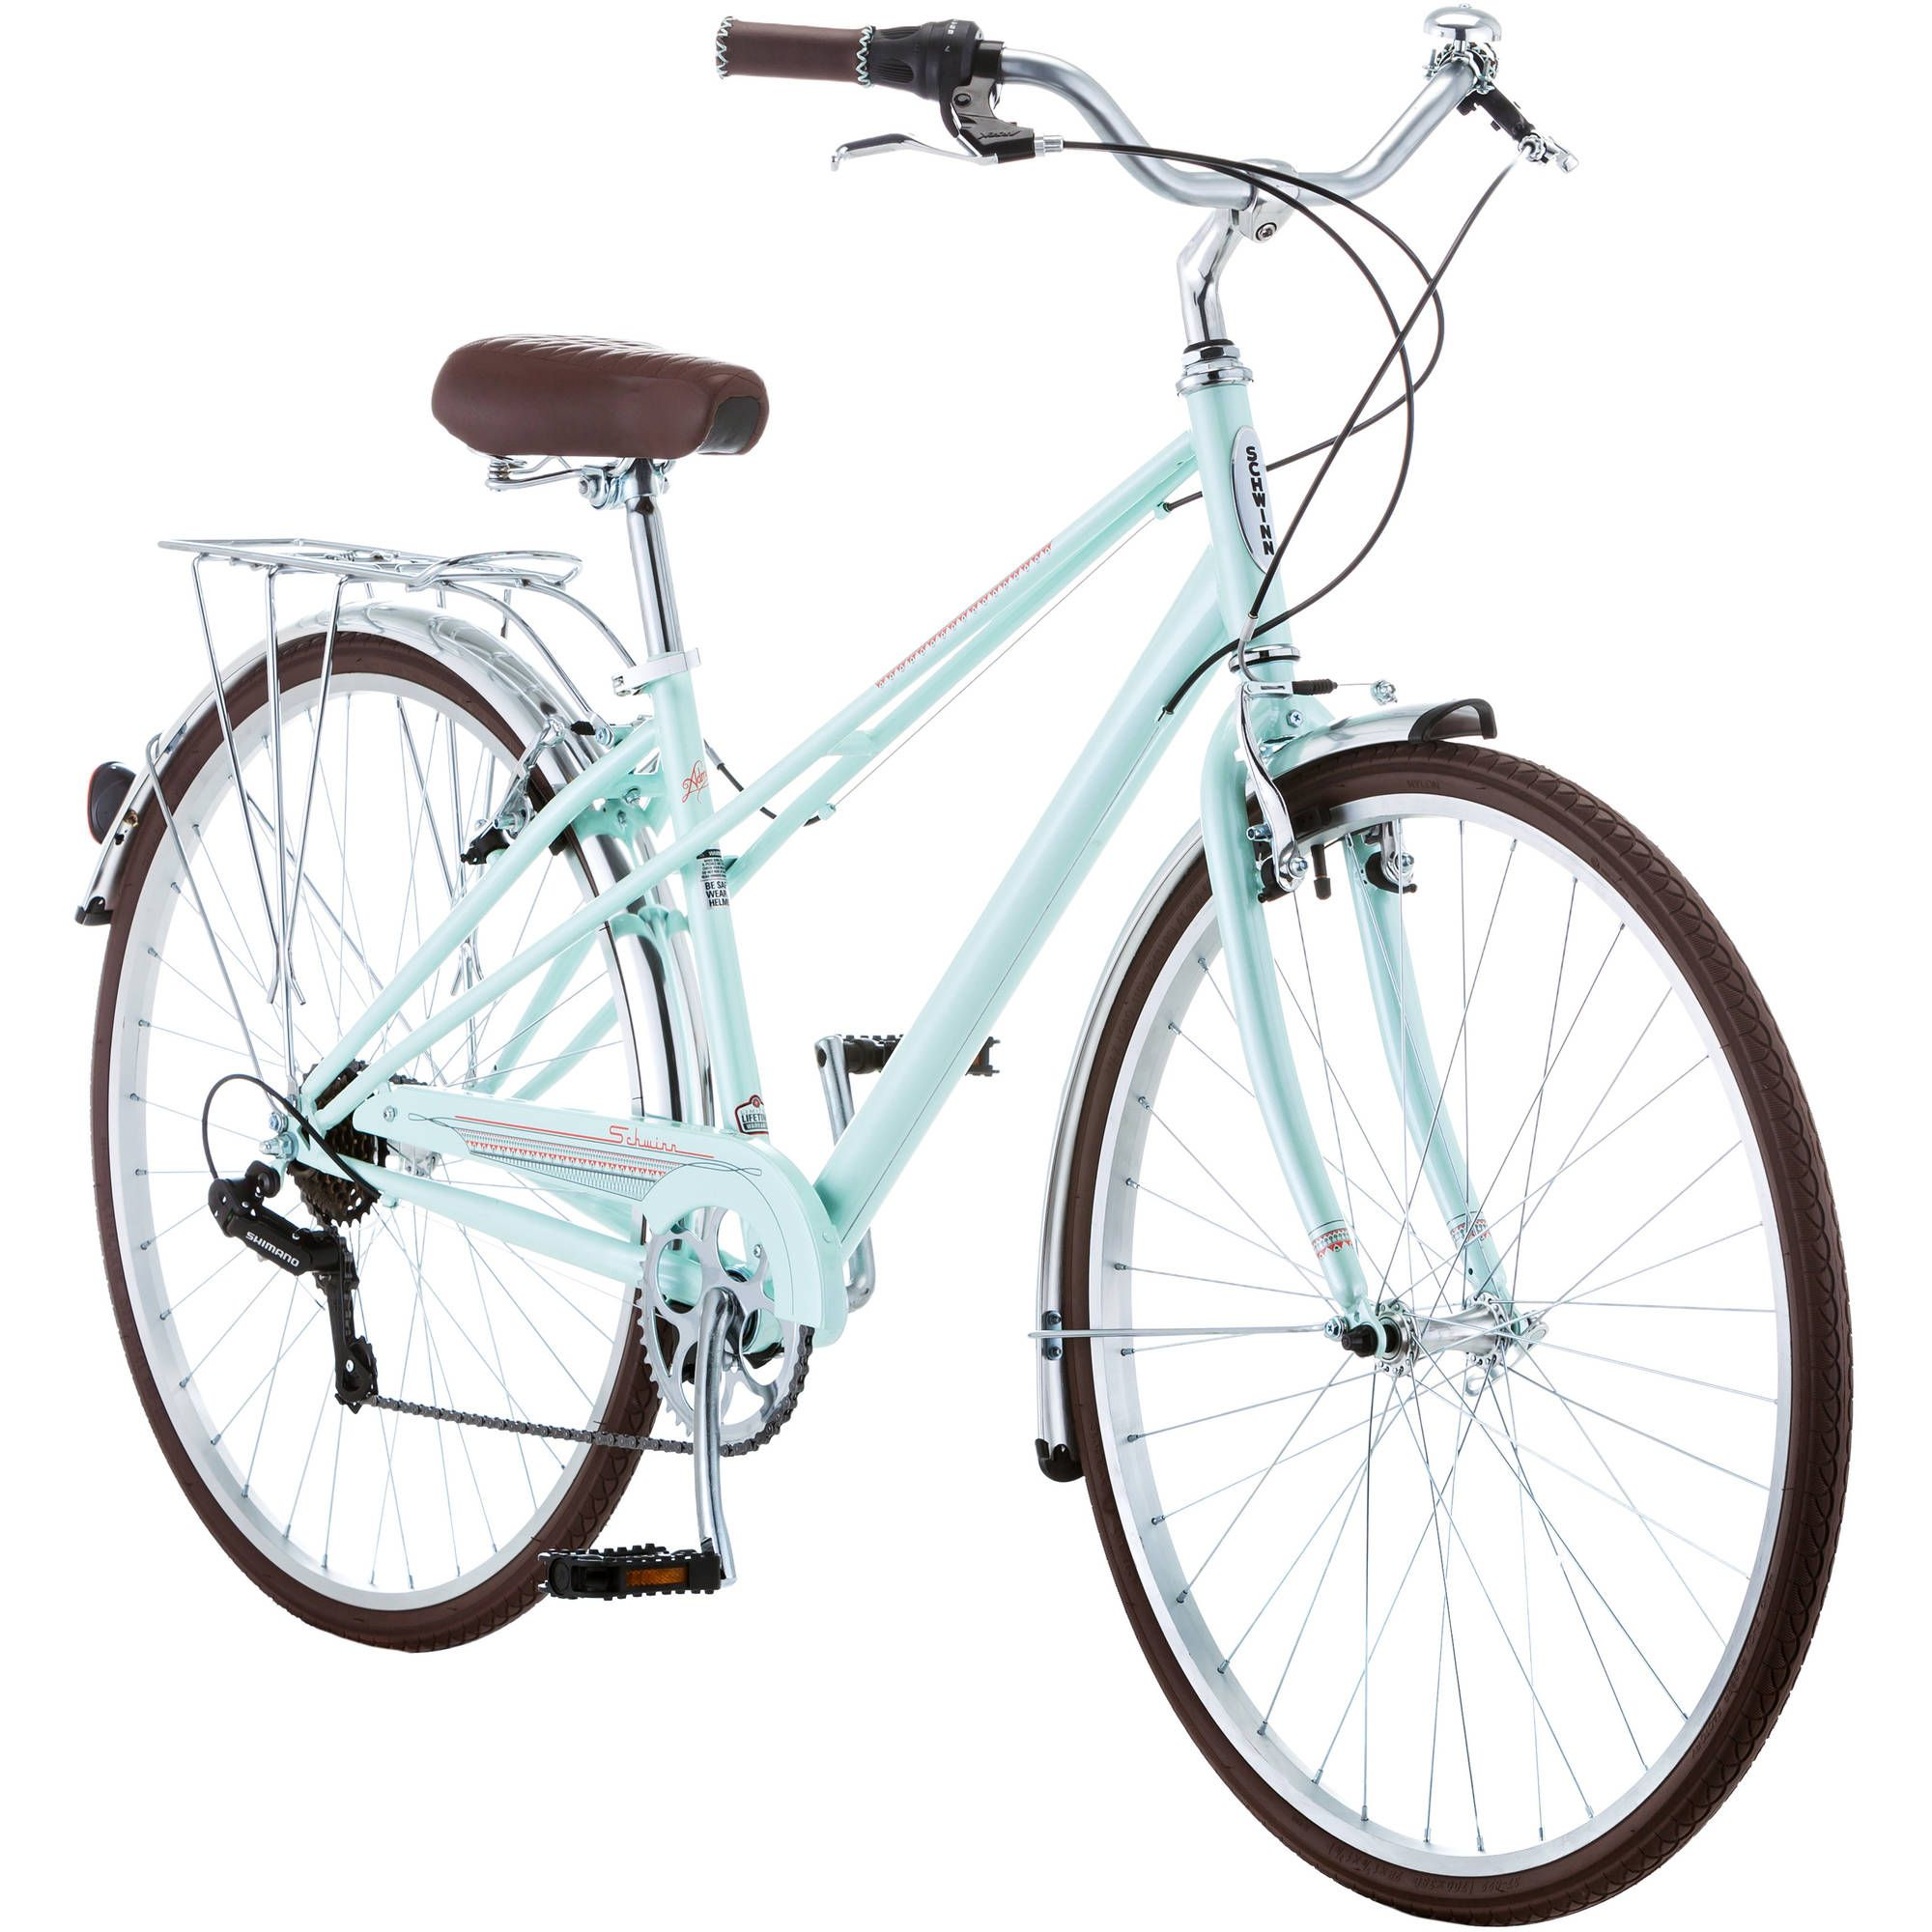 Sports & outdoors Comfort bike, Hybrid bike, Schwinn bike